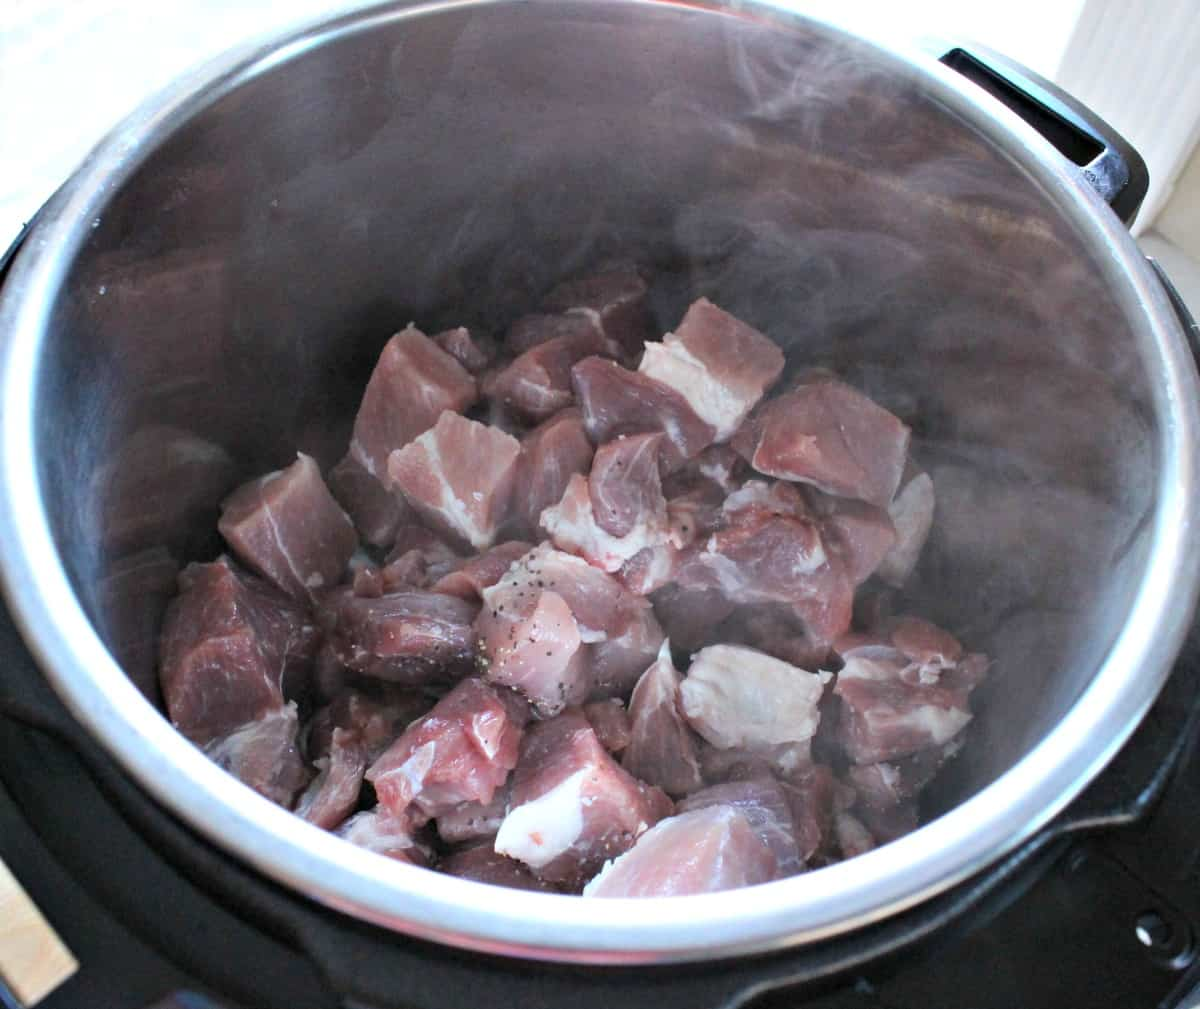 Pork meat cooking inside the instant pot.